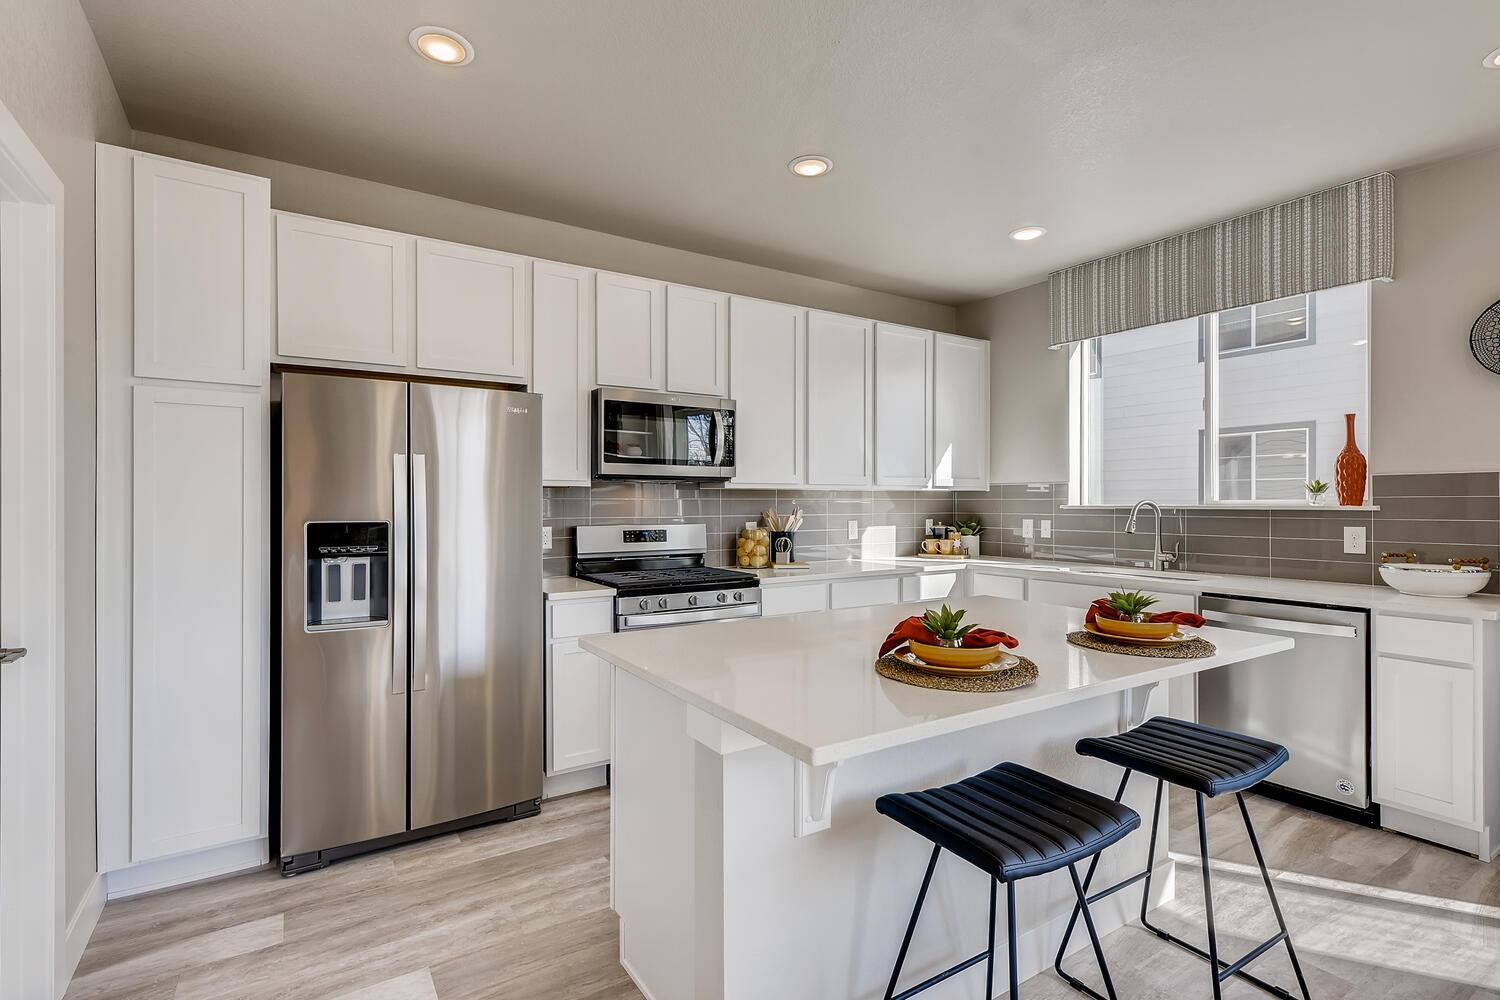 Pearson Grove Townhomes,80215